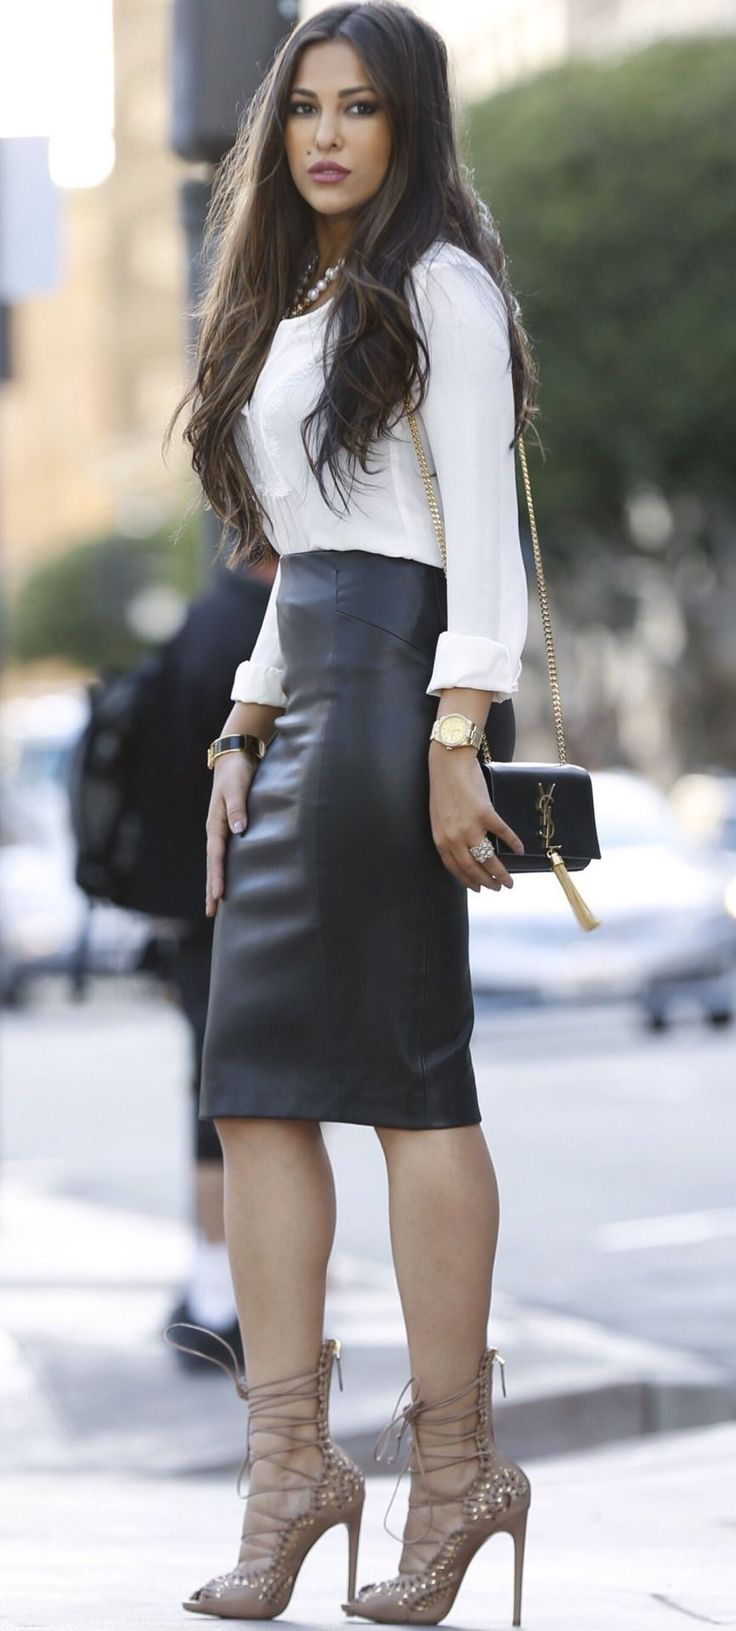 Black leather high waisted midi skirt with strappy heels #highheelbootsskirt #blackhighheelsoutfit